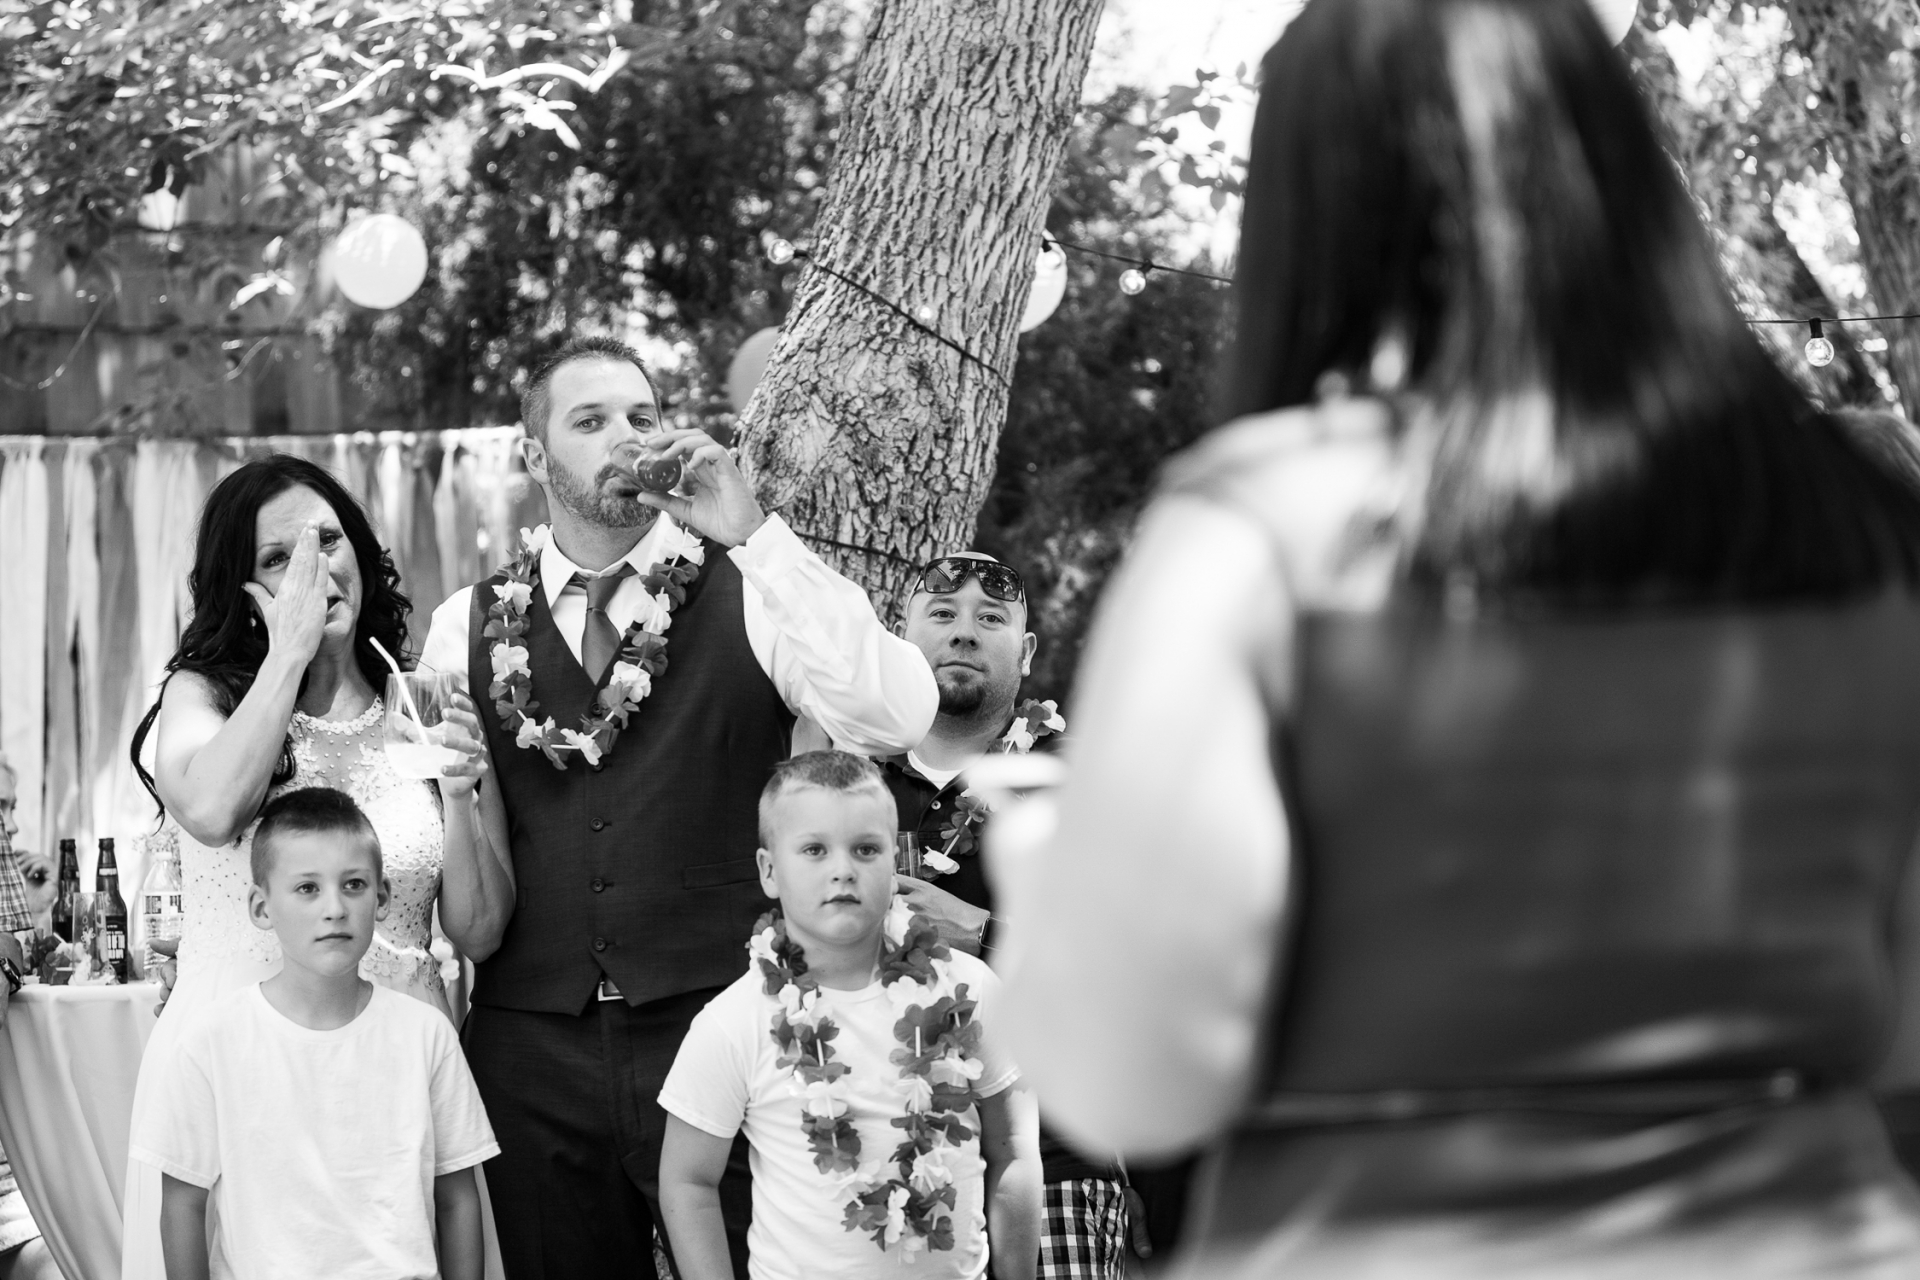 Backyard Elopement Image | sweet toasts together after the ceremony